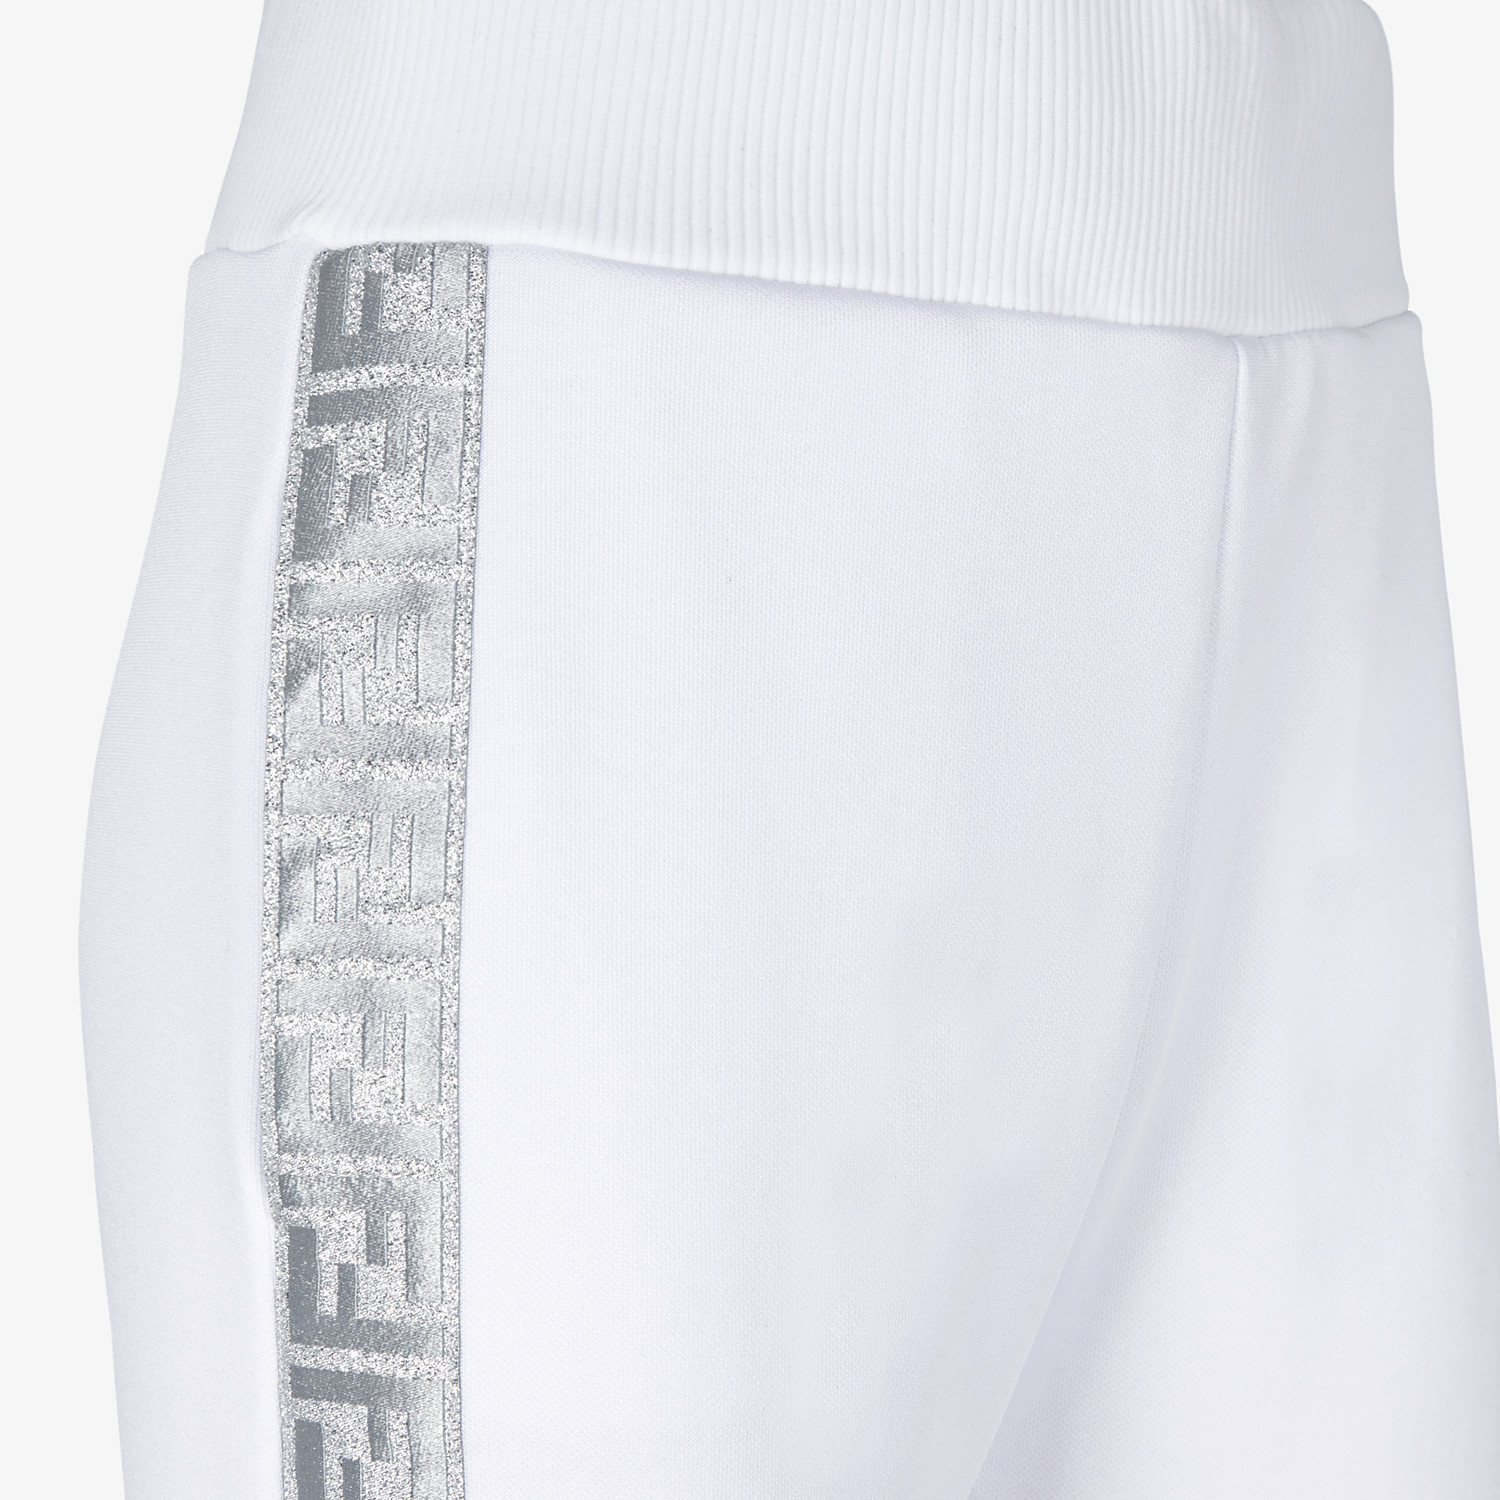 FENDI PANTS - White jersey jogging pants - view 3 detail